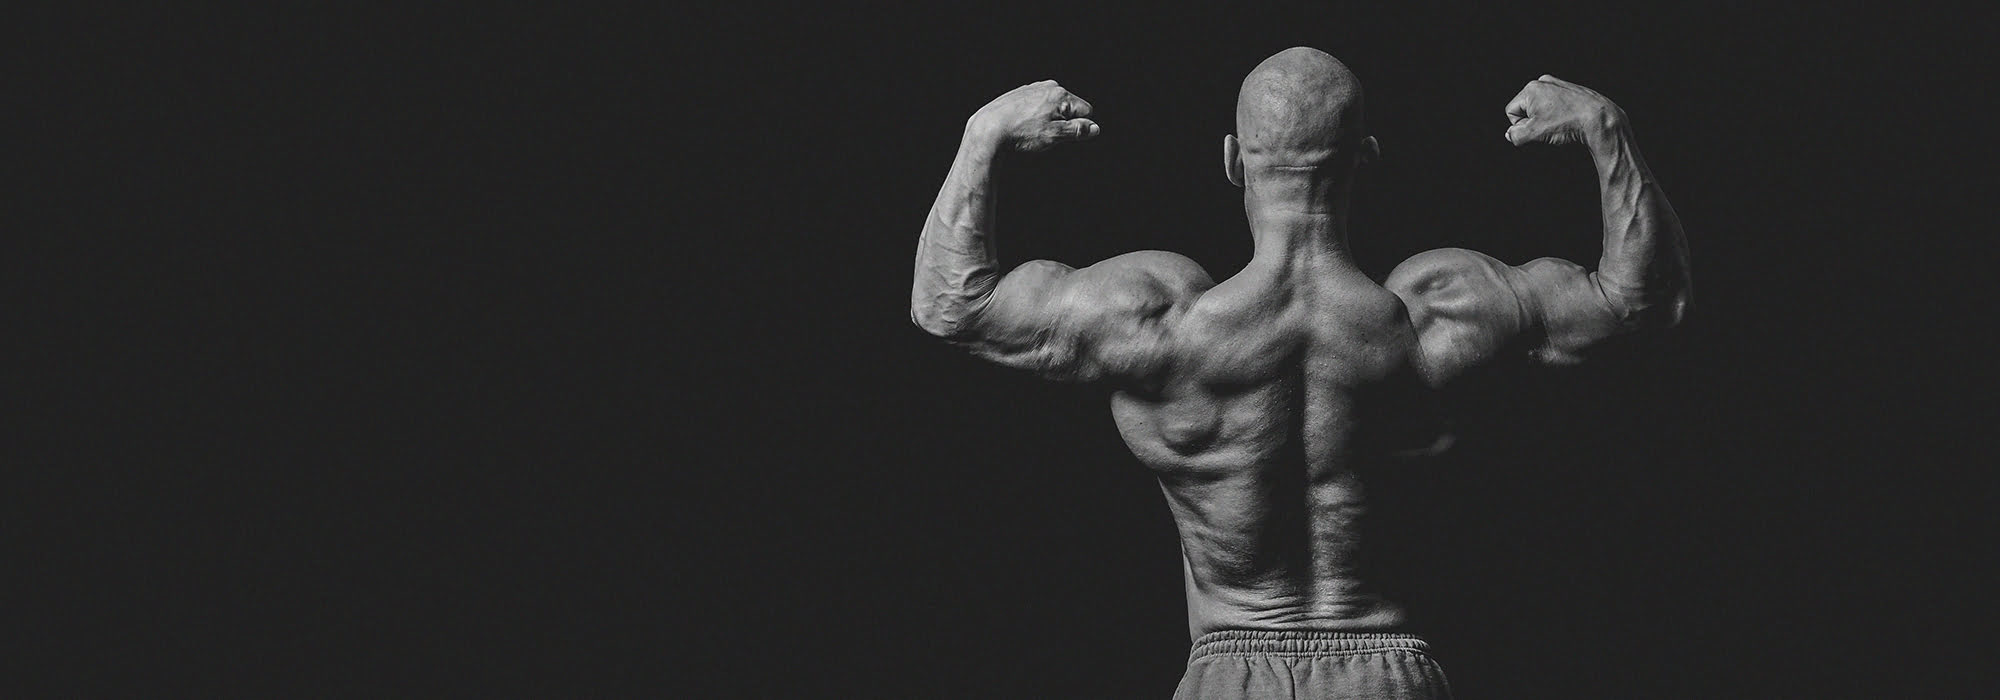 THE OMNI-CONTRACTIONS TRAINING SYSTEM 2: THE METHODS – COURSE